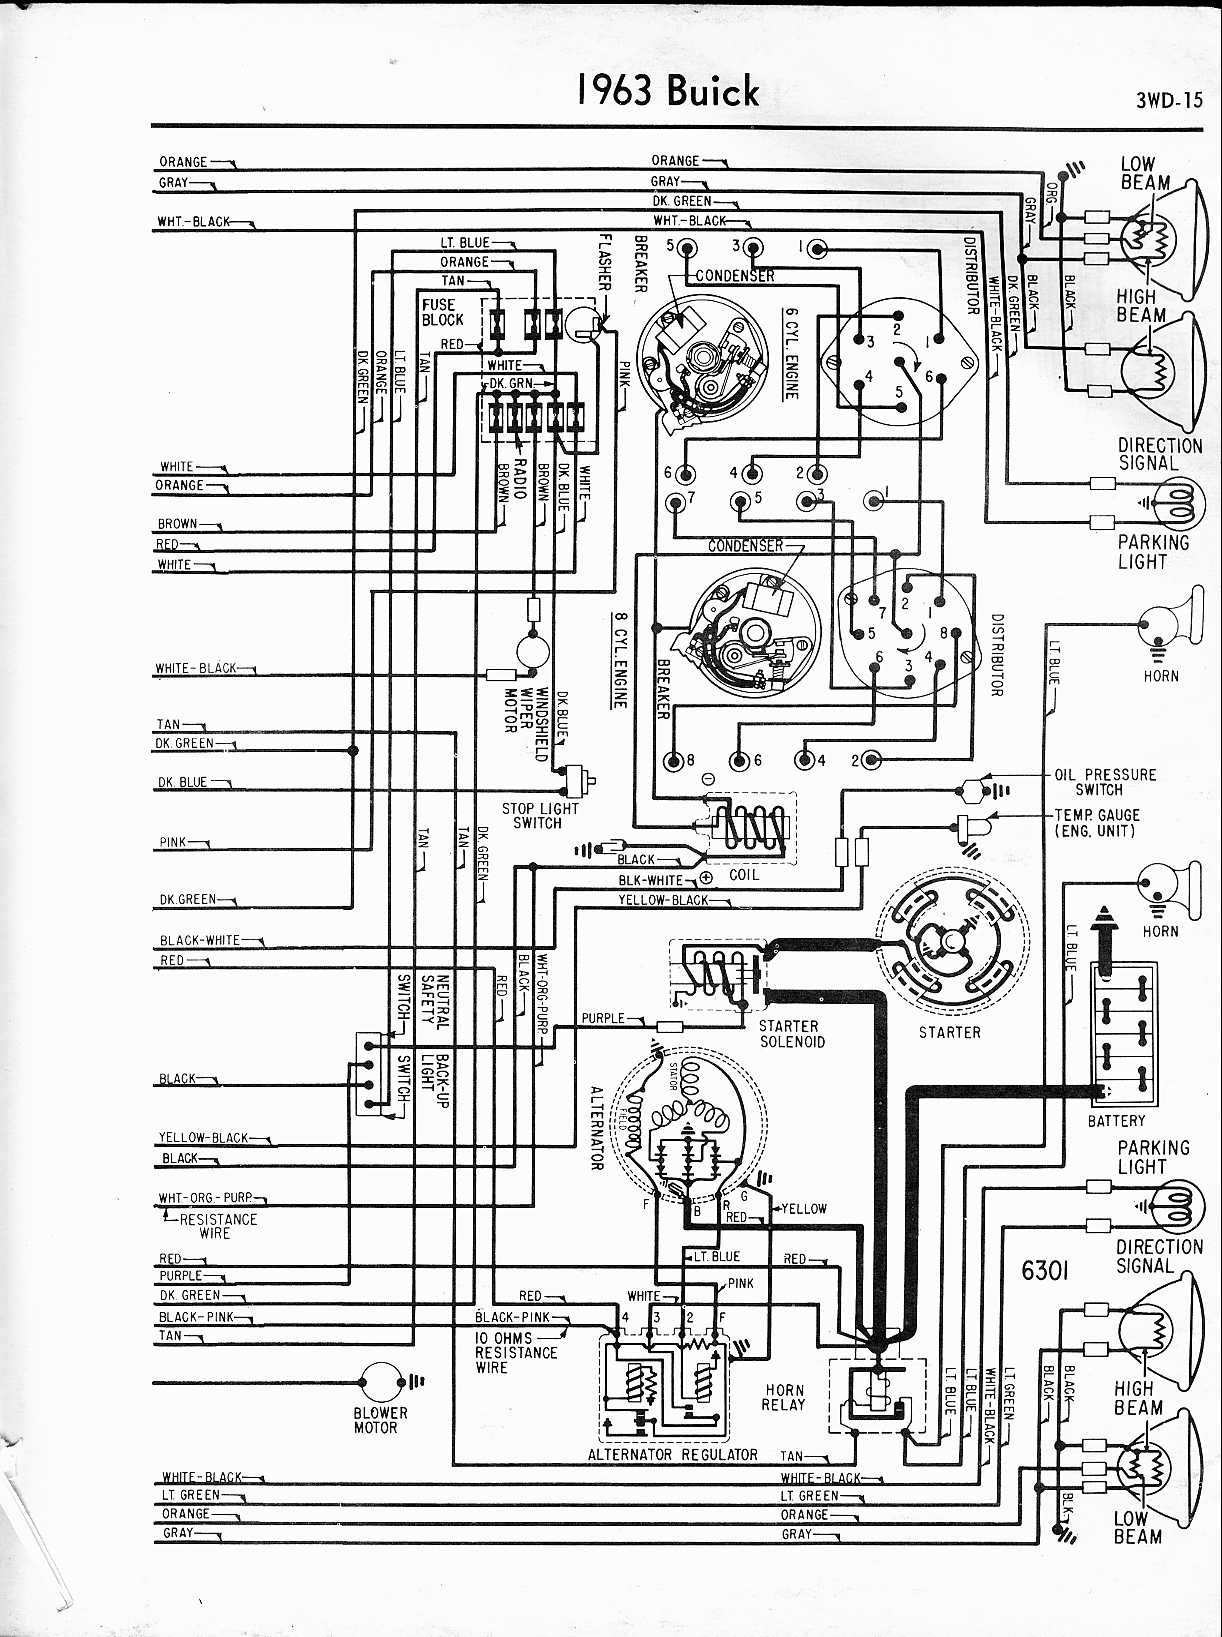 Alternator Wiring Diagram For Buick Grand National - Search For ...